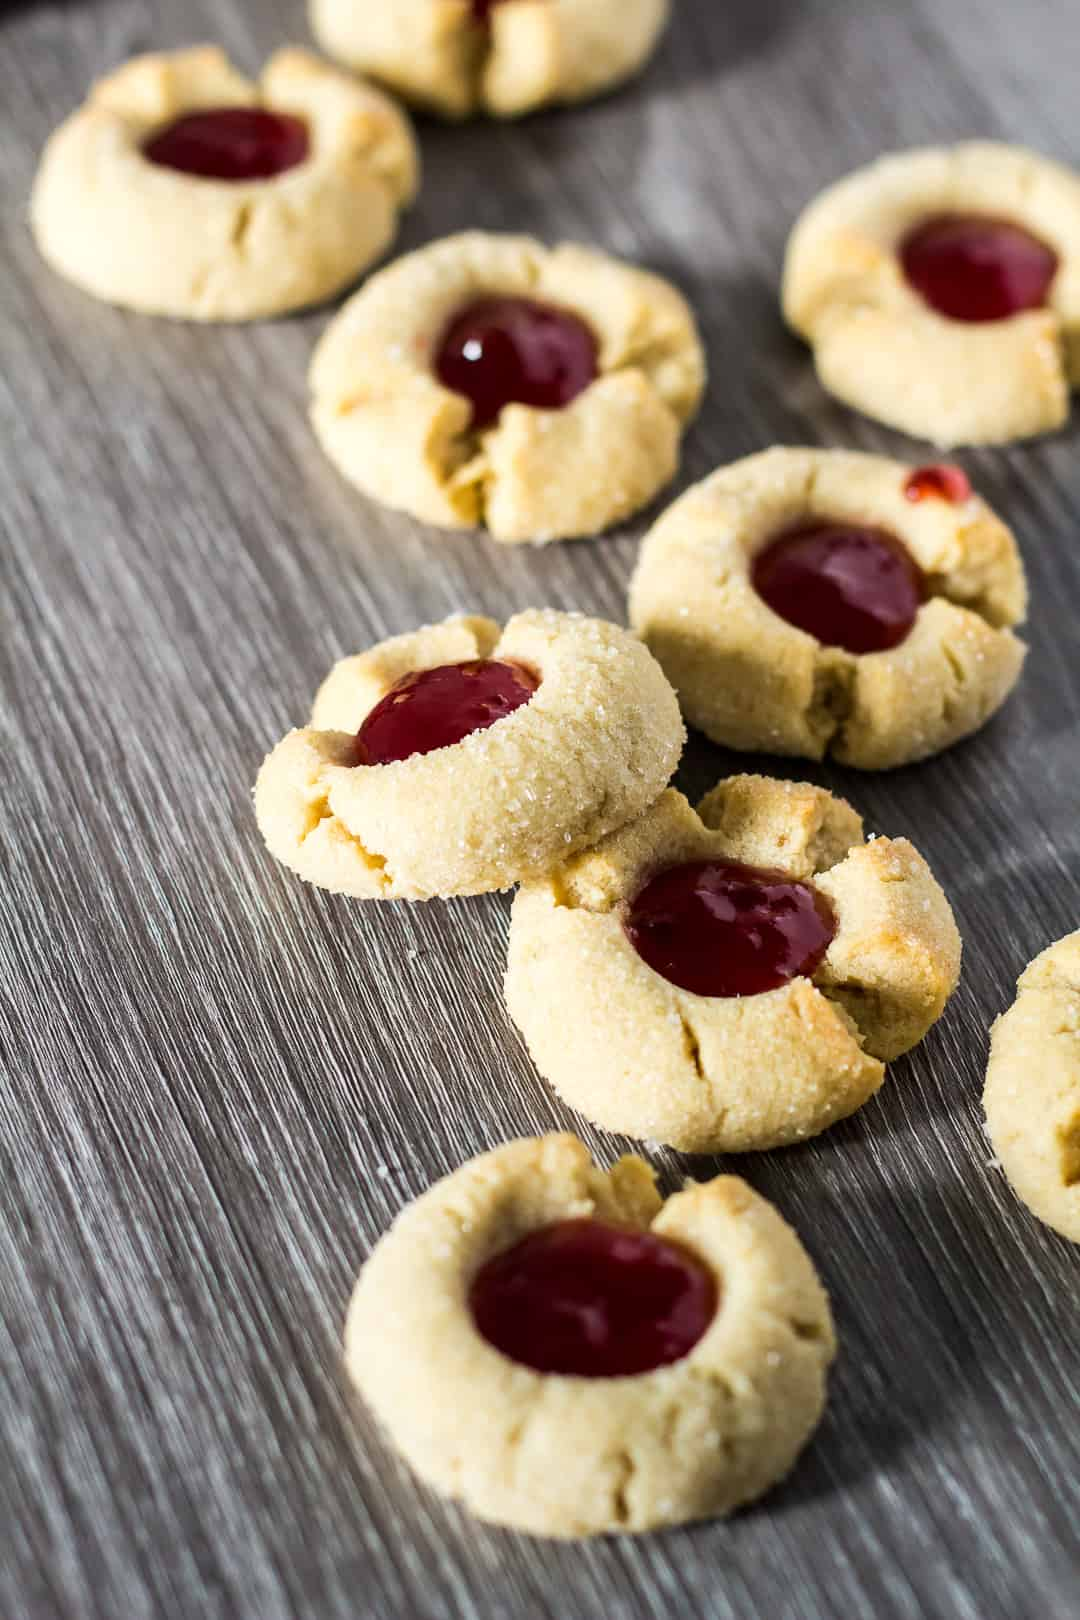 Peanut Butter & Jam Thumbprint Cookies scattered on a grey background.